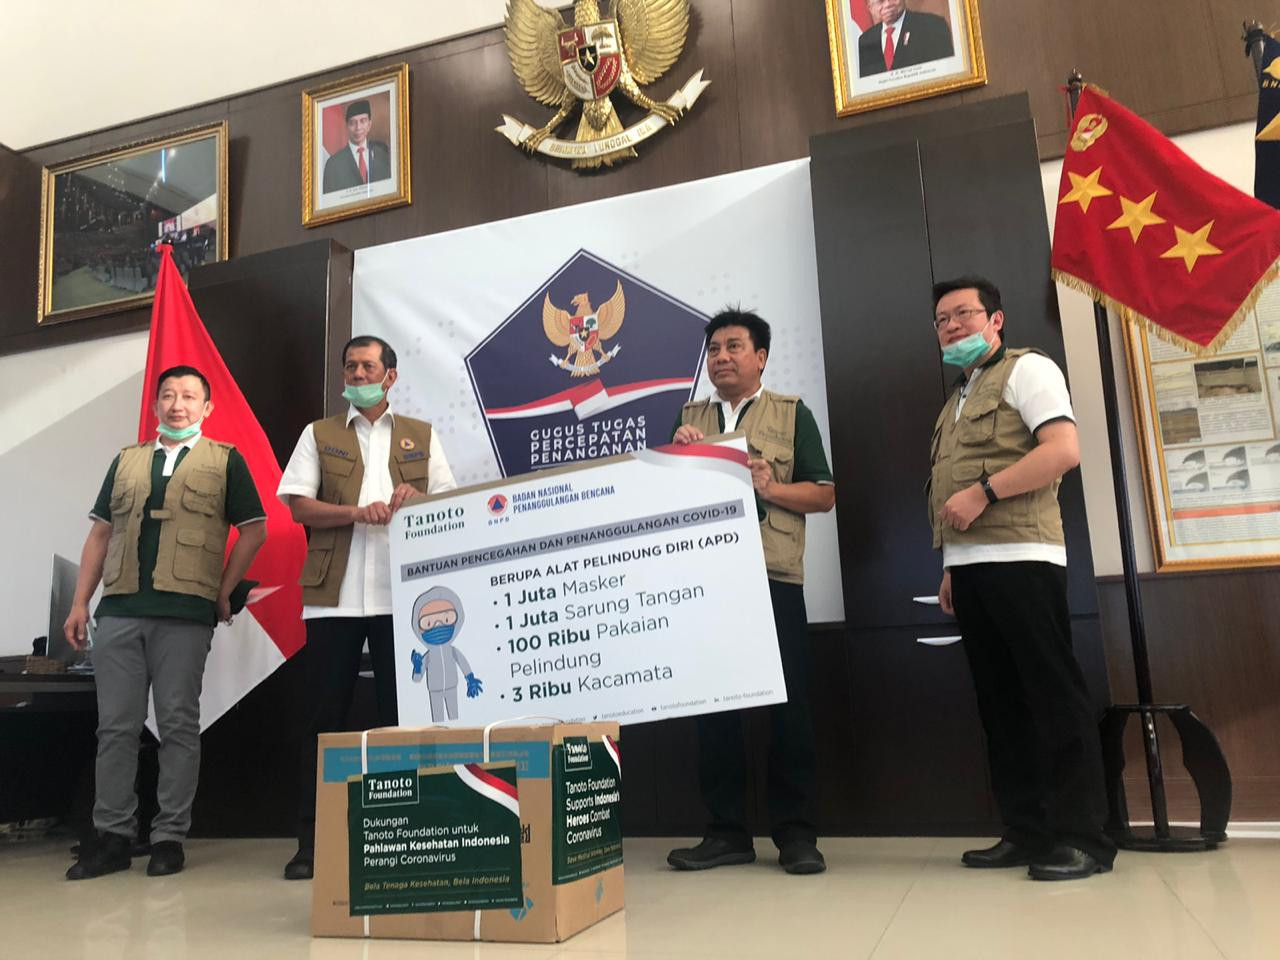 Tanoto Foundation donates protective gear for health workers